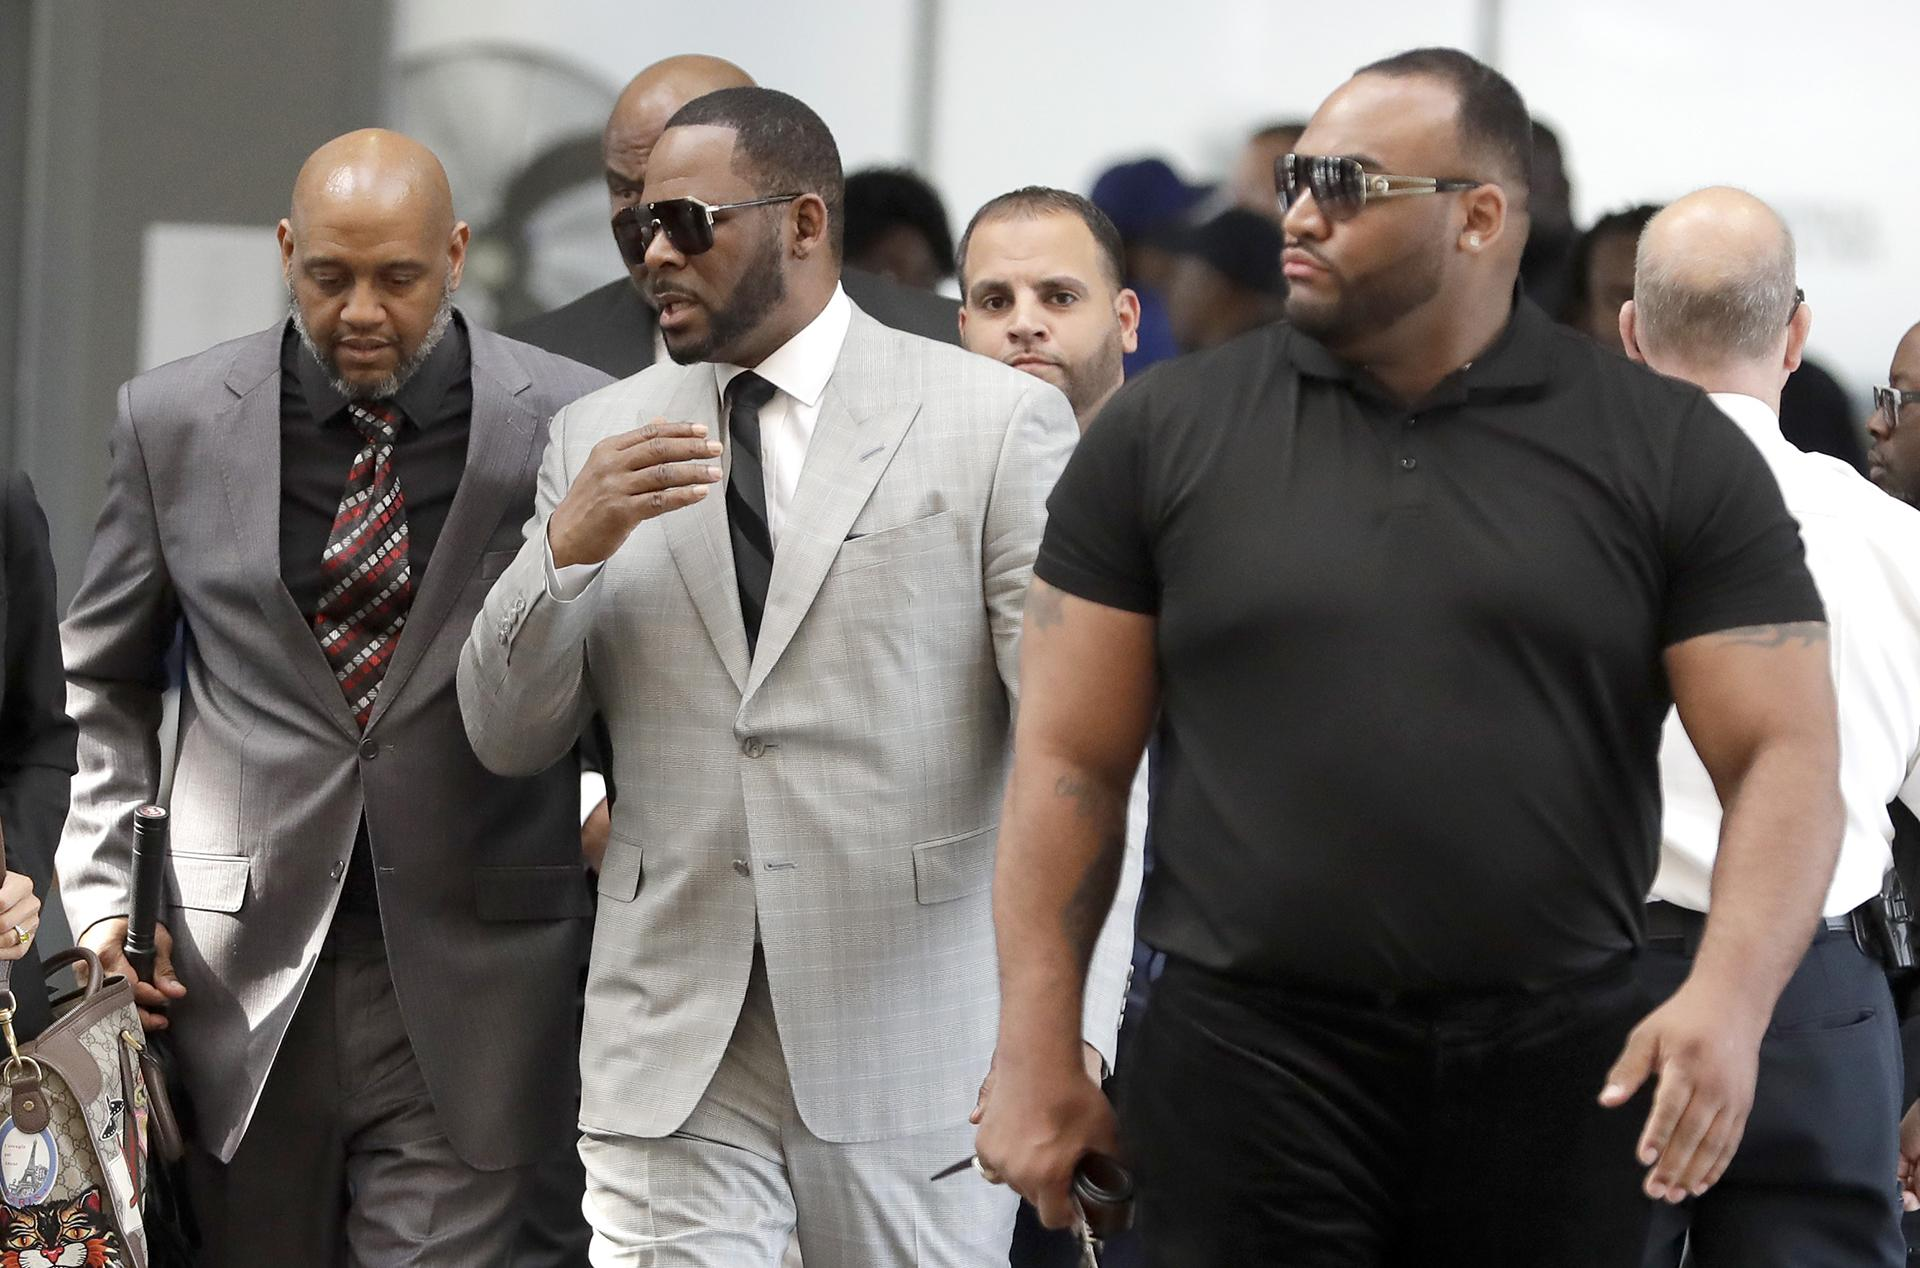 Musician R. Kelly, center, arrives at the Leighton Criminal Court building for an arraignment on new sex-related felonies Thursday, June 6, 2019, in Chicago. (AP Photo / Charles Rex Arbogast)